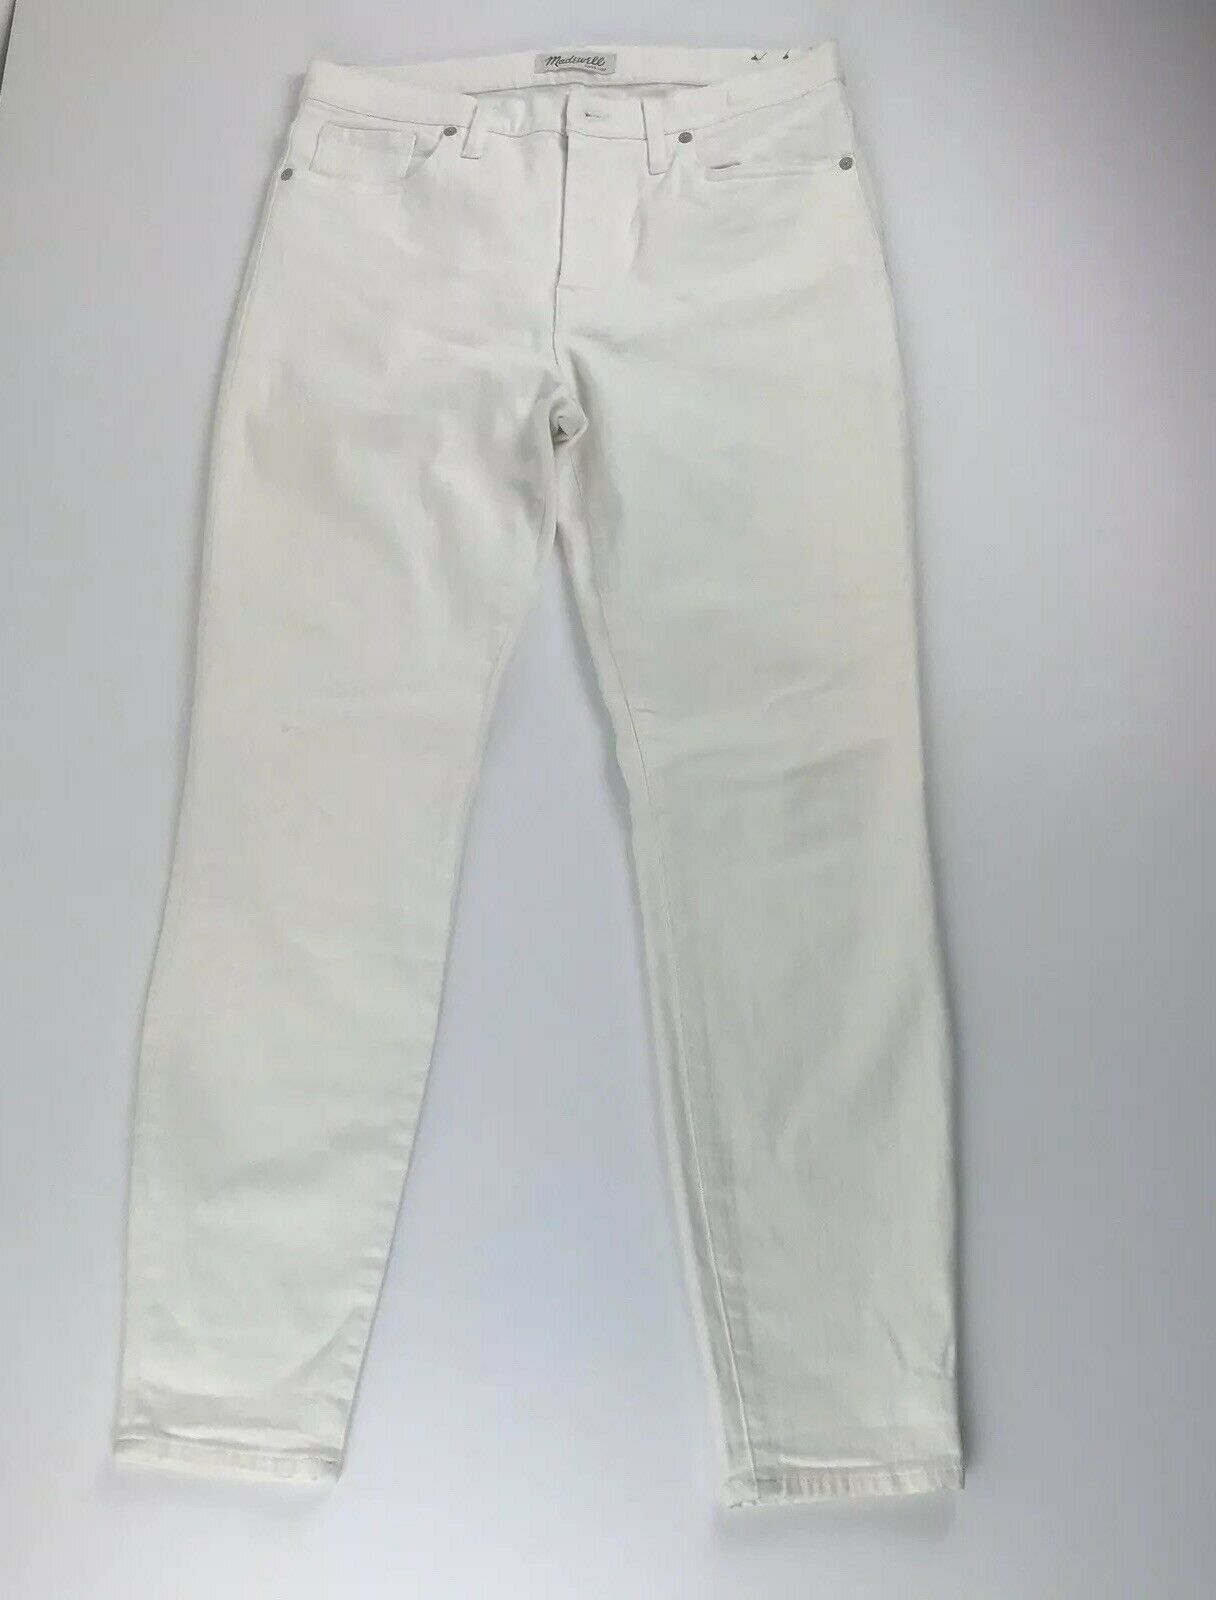 Madewell damen 31 Weiß Denim Jeans Pants High Rise Skinny Stretch  30  Inseam